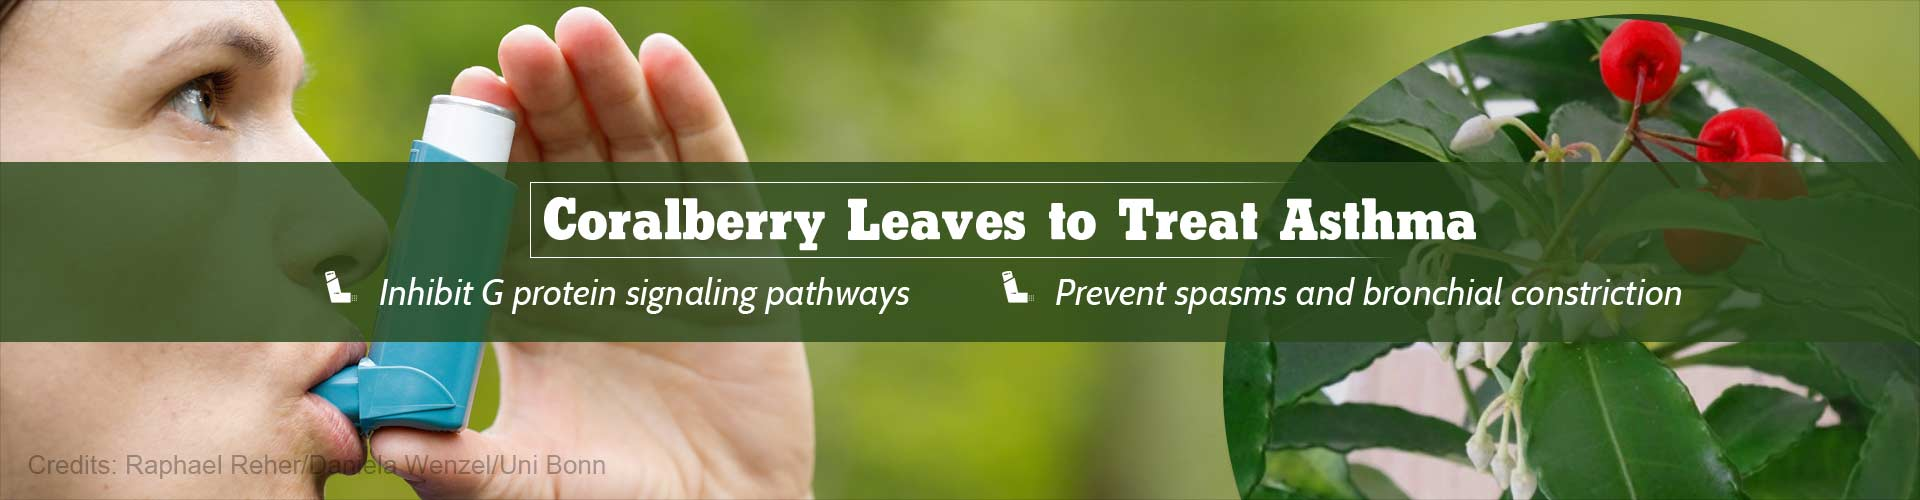 Active Ingredient from Coralberry Leaves to Fight Asthma